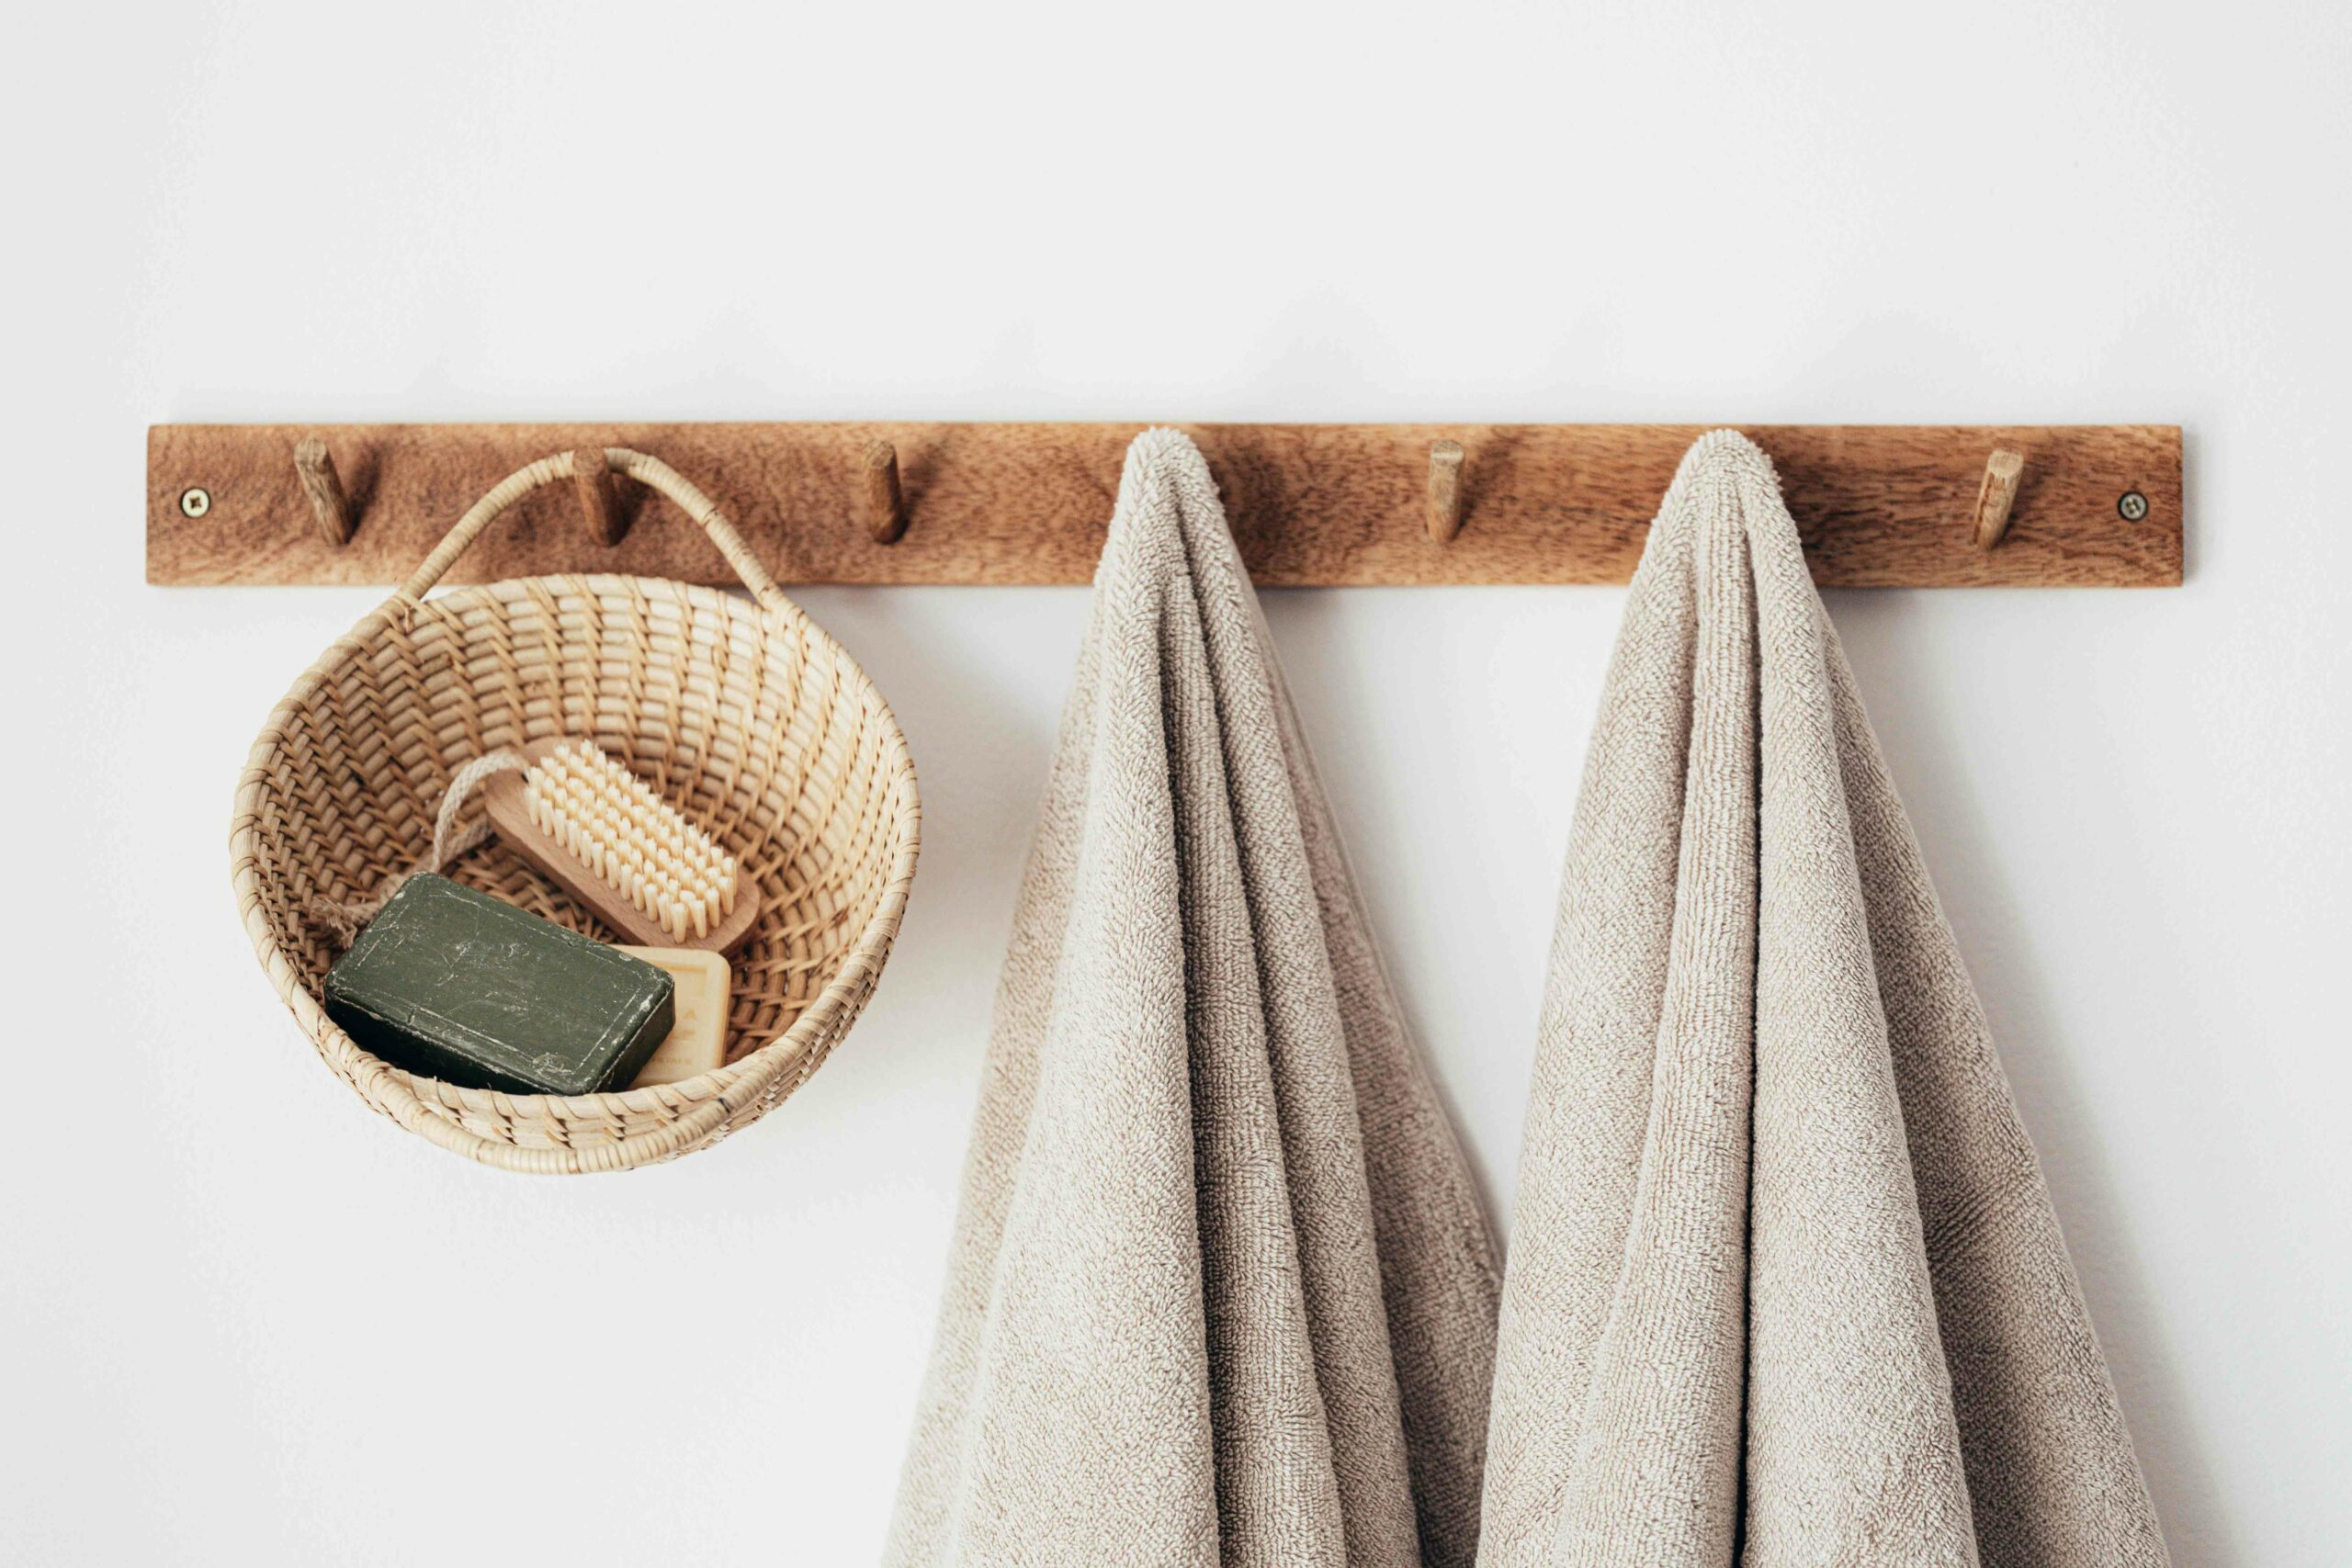 Eco-Friendly Hotel Ideas: 6 Ways Your Hotel Can Become More Sustainable